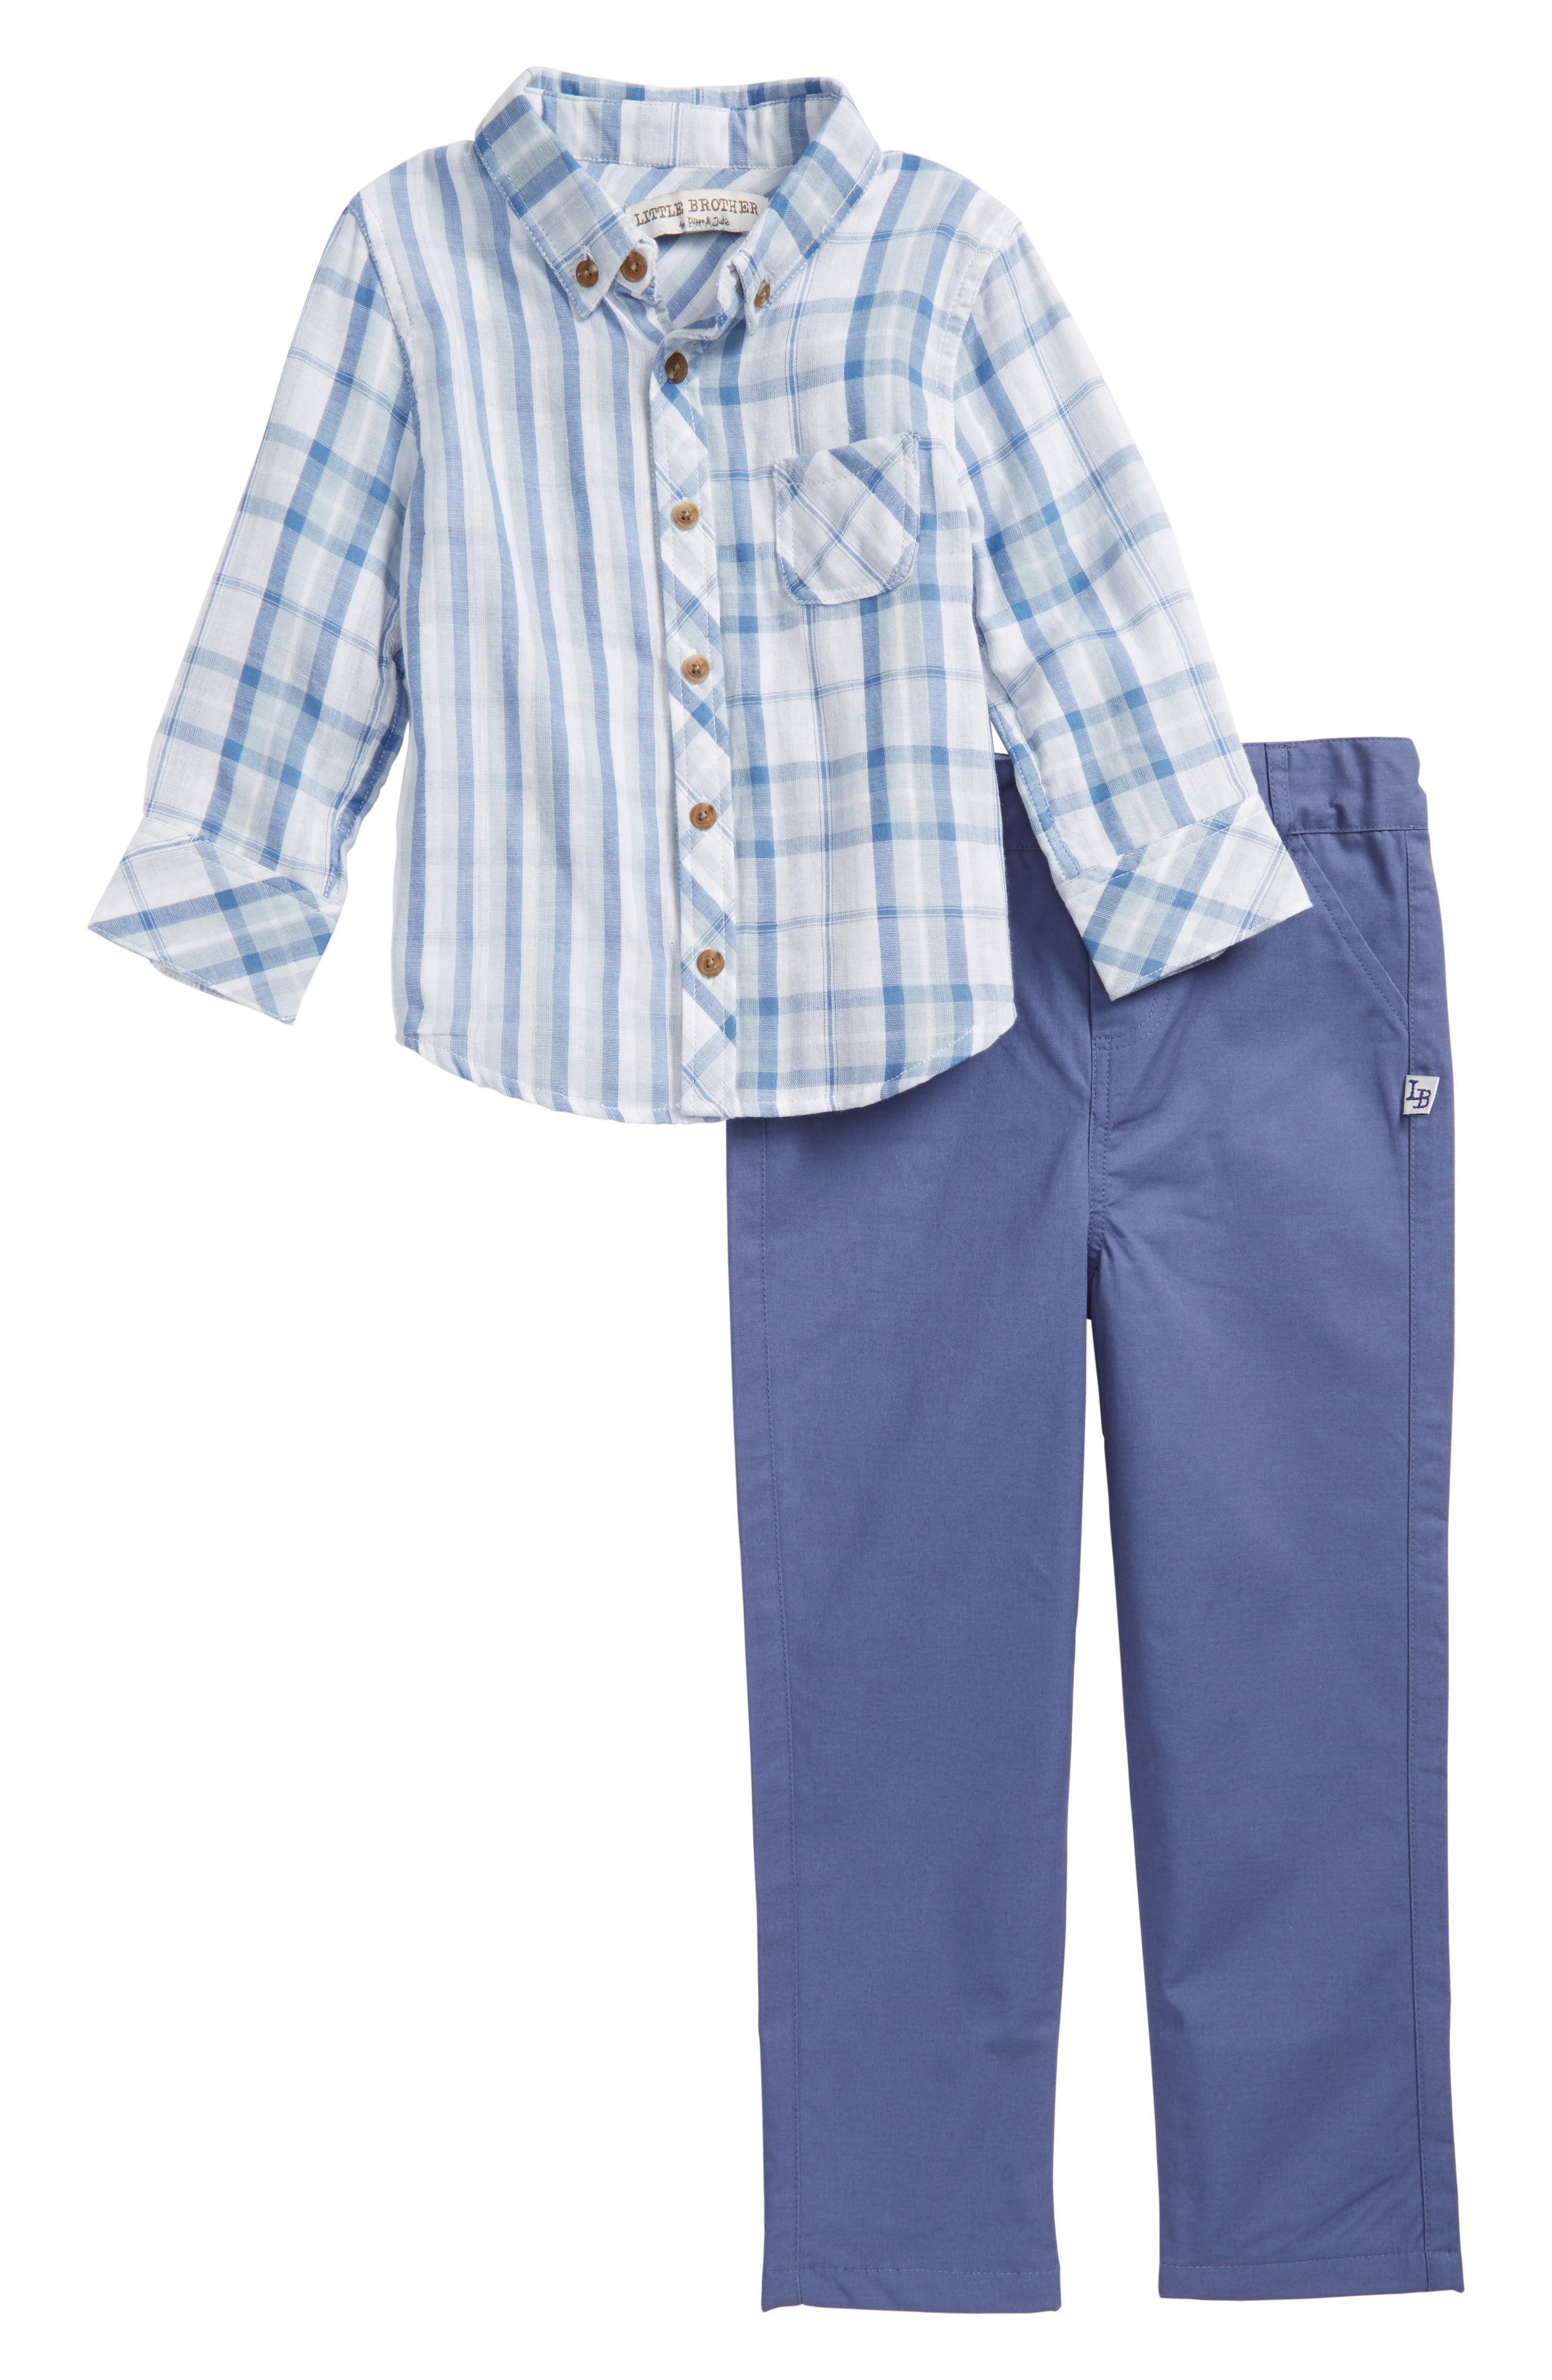 Little Brother by Pippa & Julie Mixed Plaid Top & Pants Set (Toddler Boys)